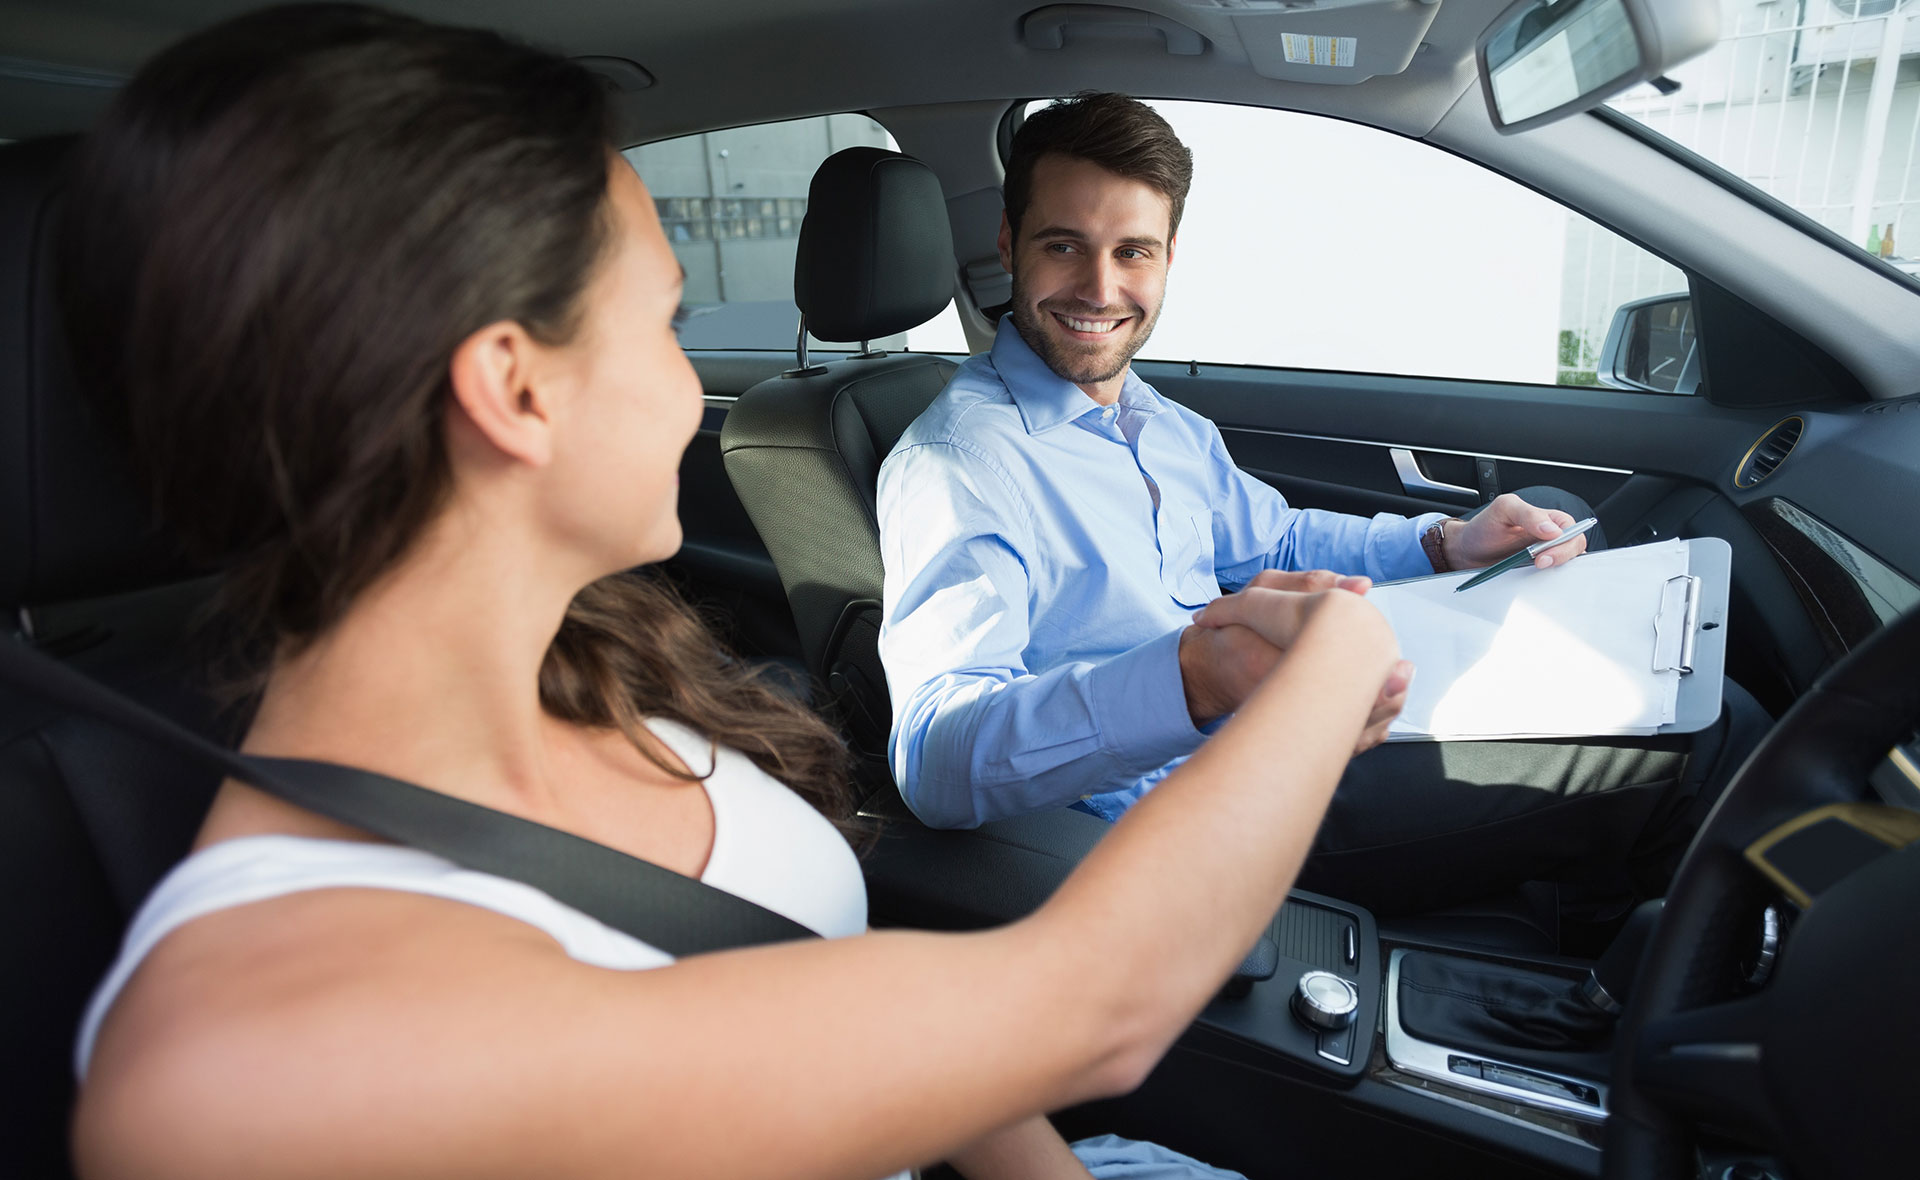 All Florida Road Test - Get Your Florida Drivers License